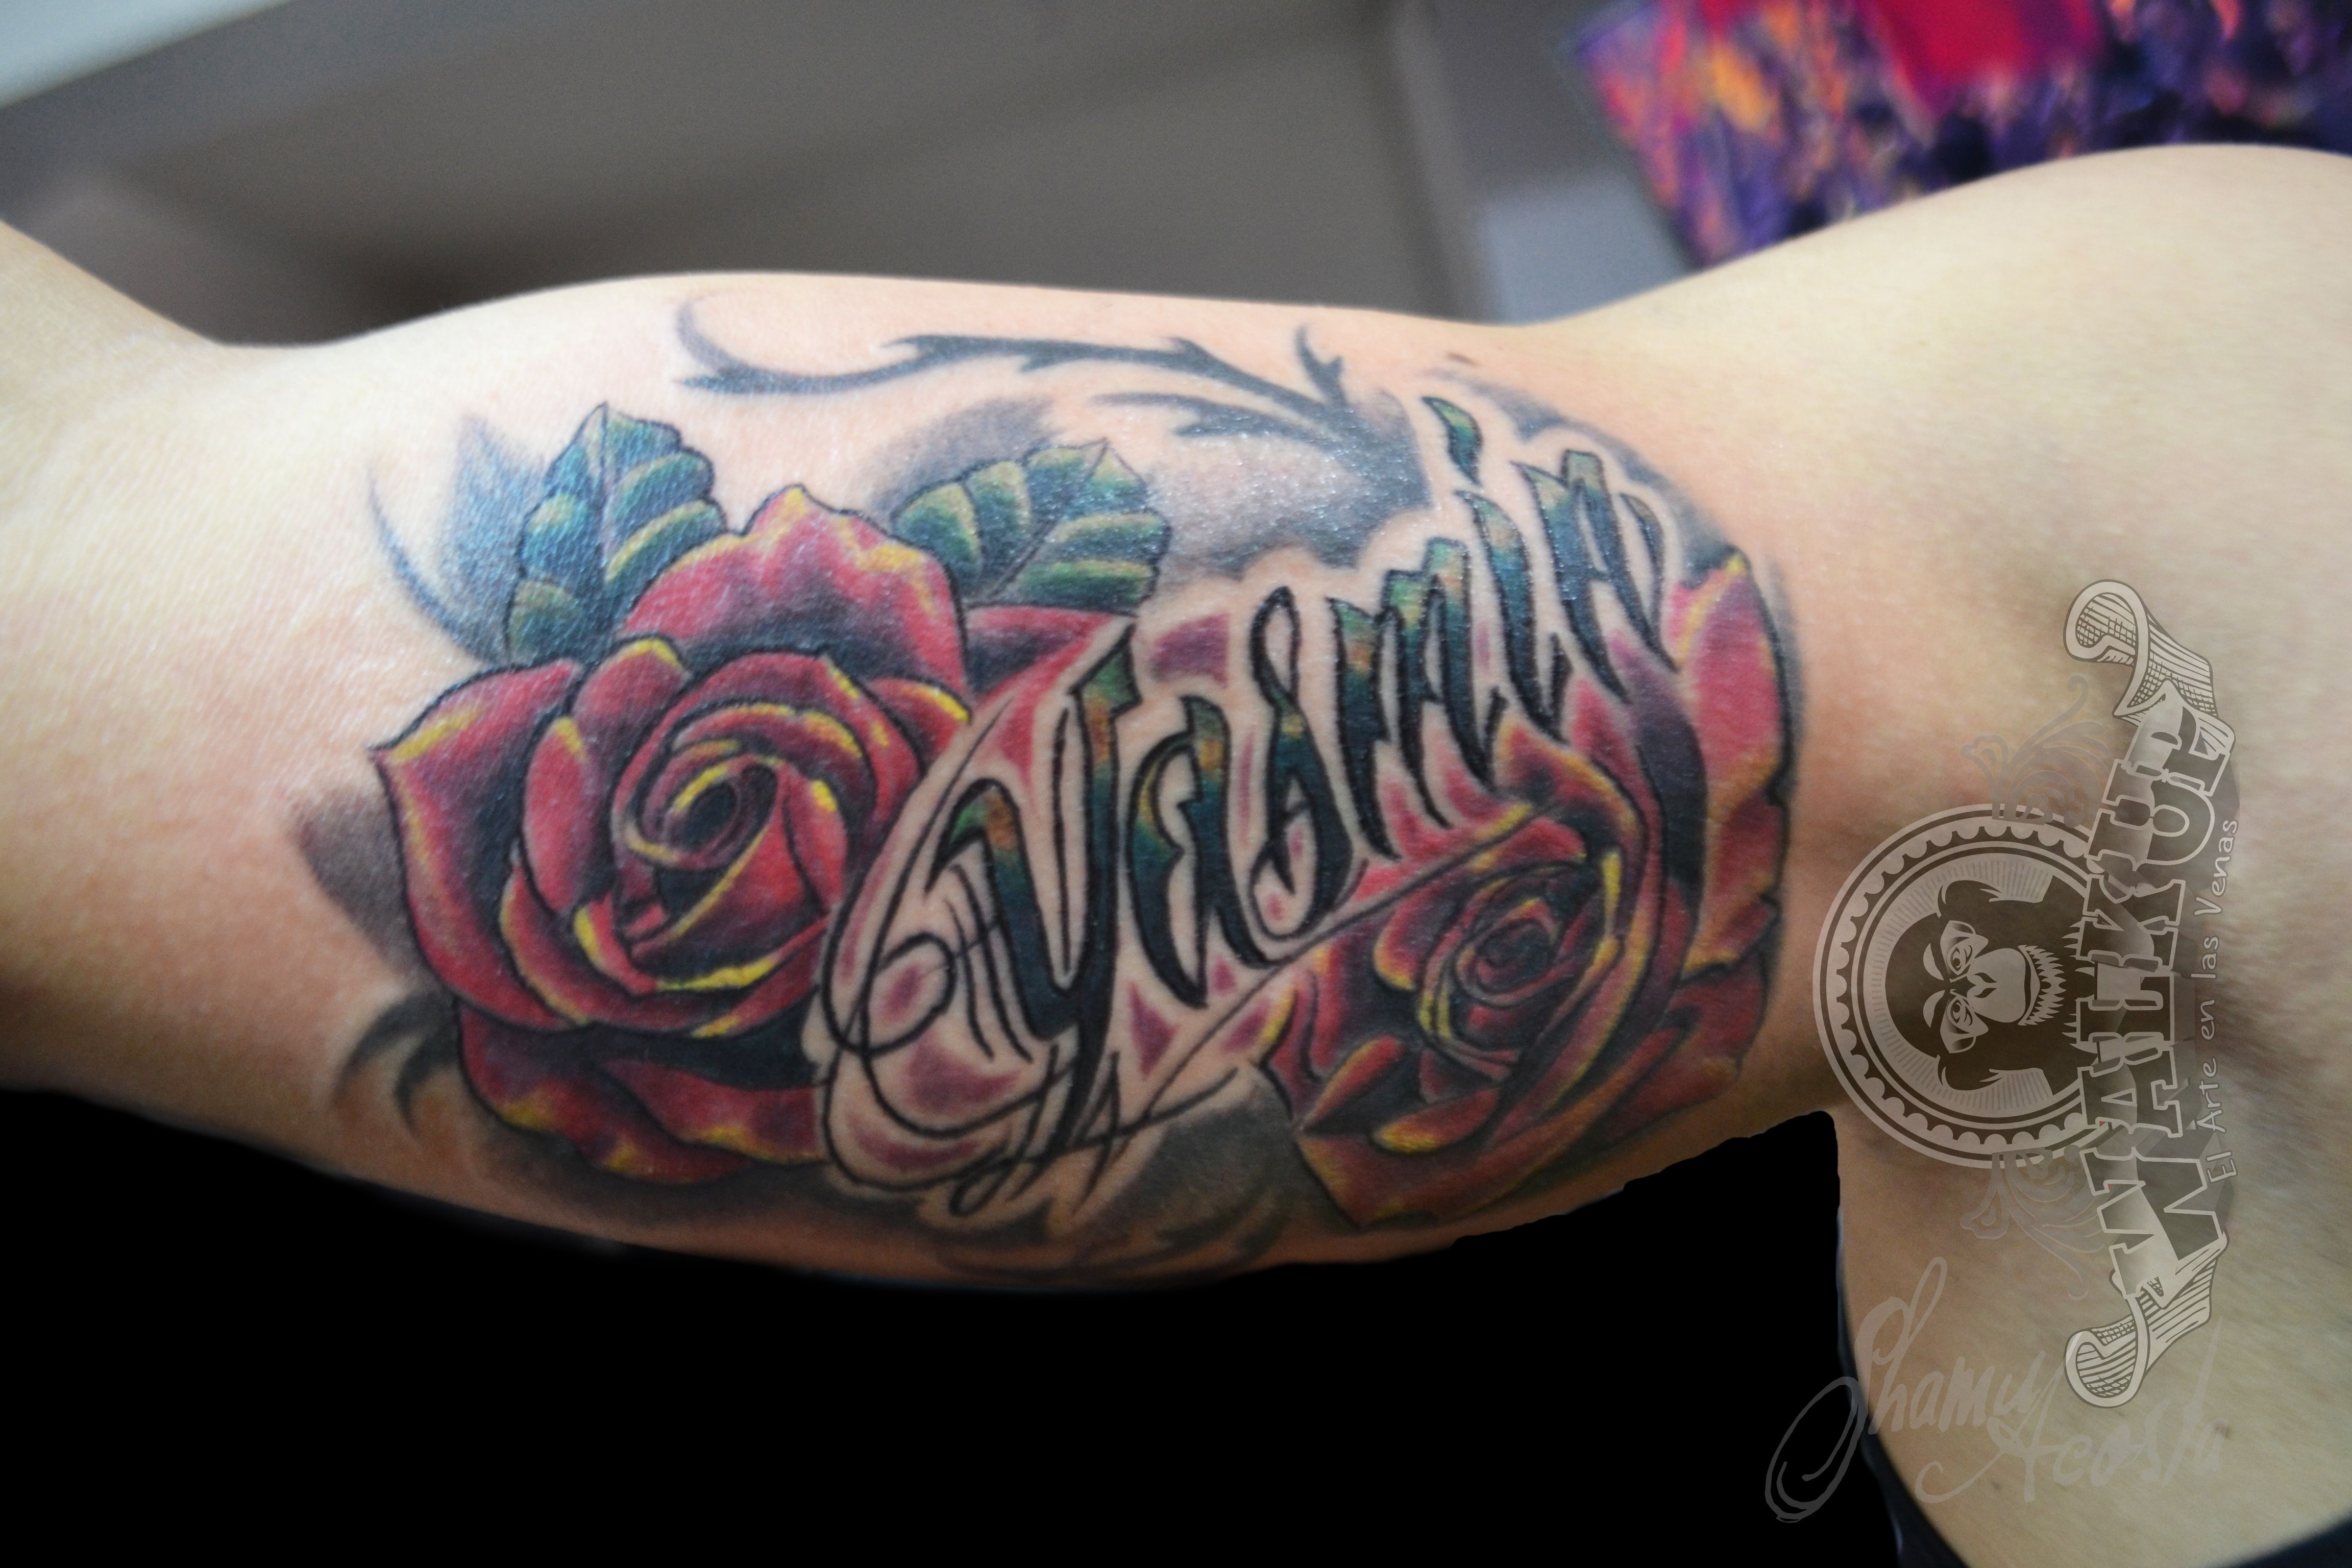 lettering rosa (pink lettering) tattoo